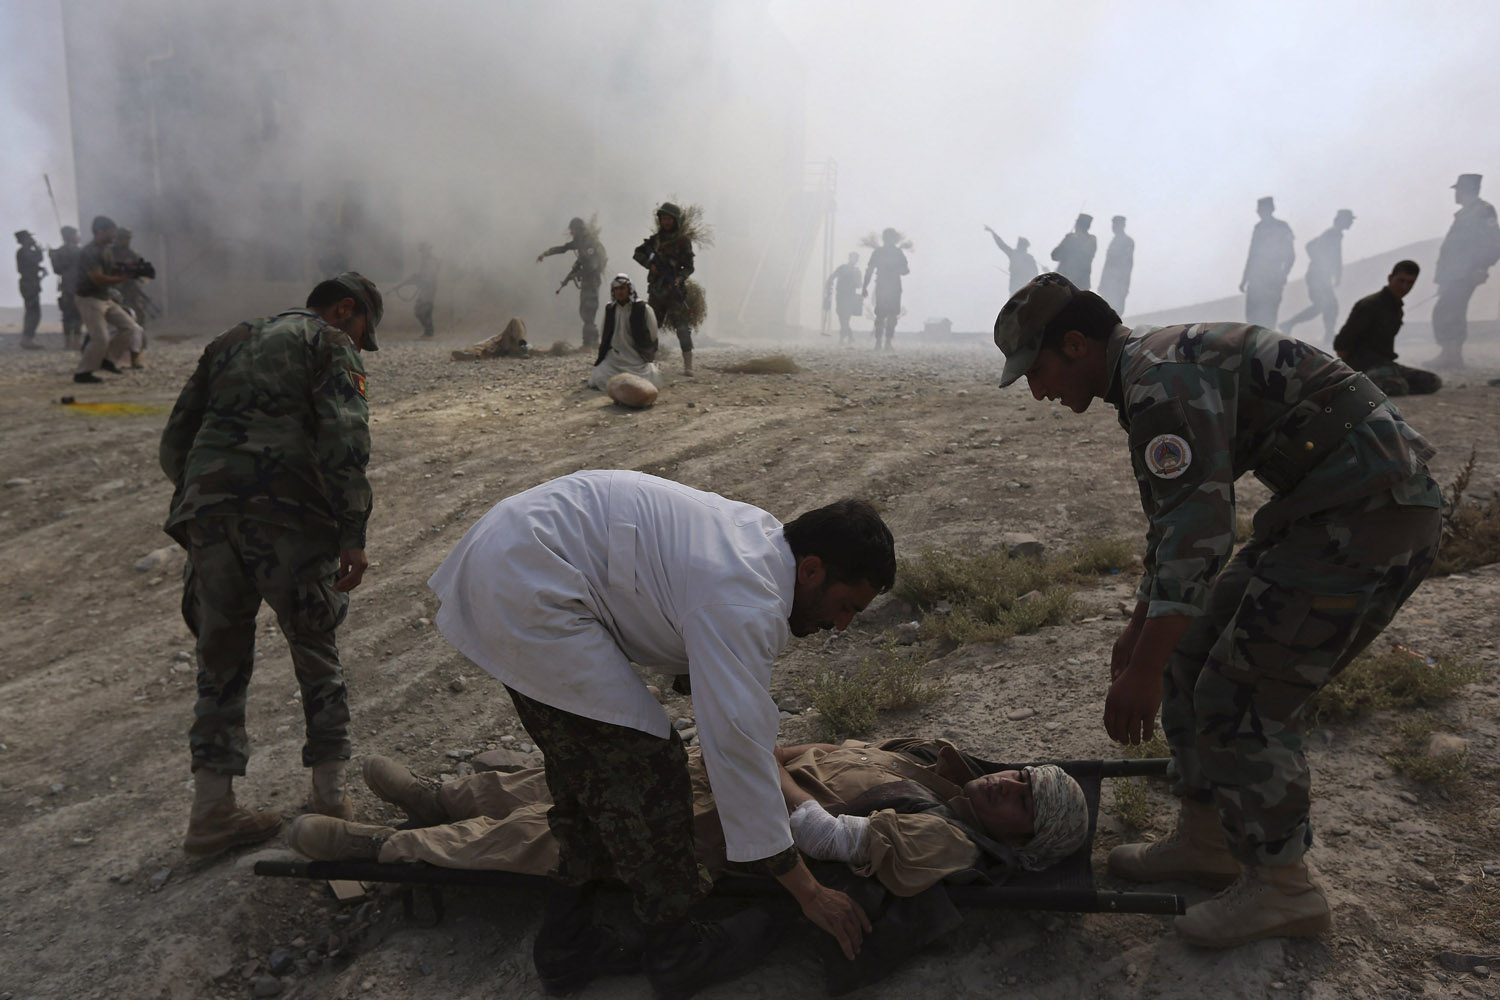 Oct. 8, 2013. Afghan National Army (ANA) officers take part in a training exercise at the Kabul Military Training Center (KMTC) in Kabul.